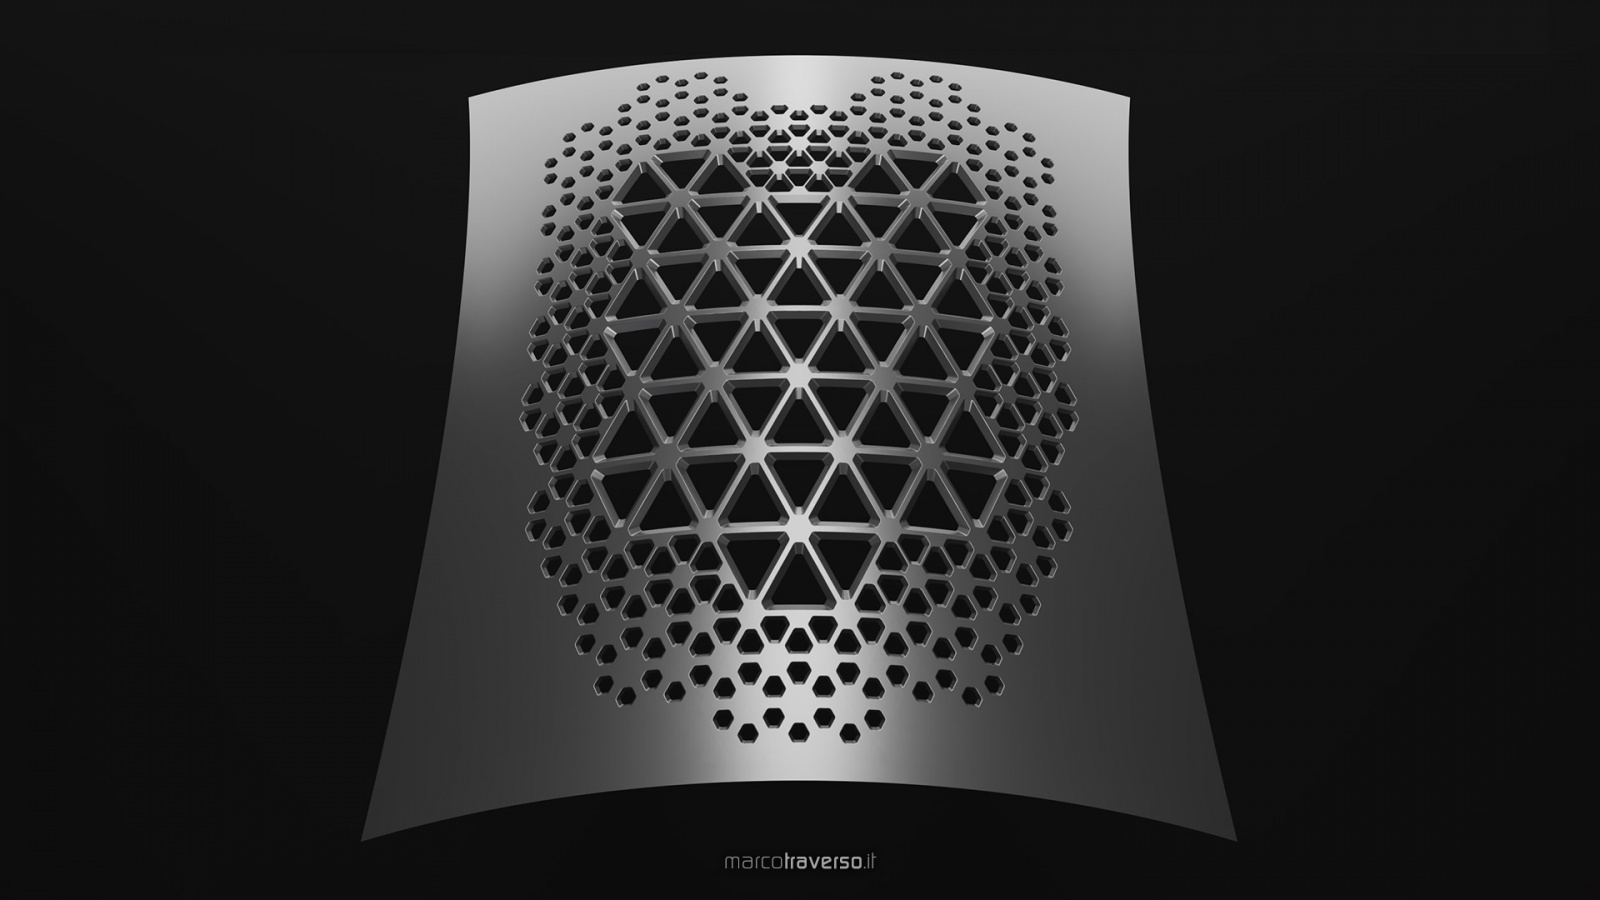 ParametricDaily 034 - 3D Hexagonal Pattern with Filleted Holes